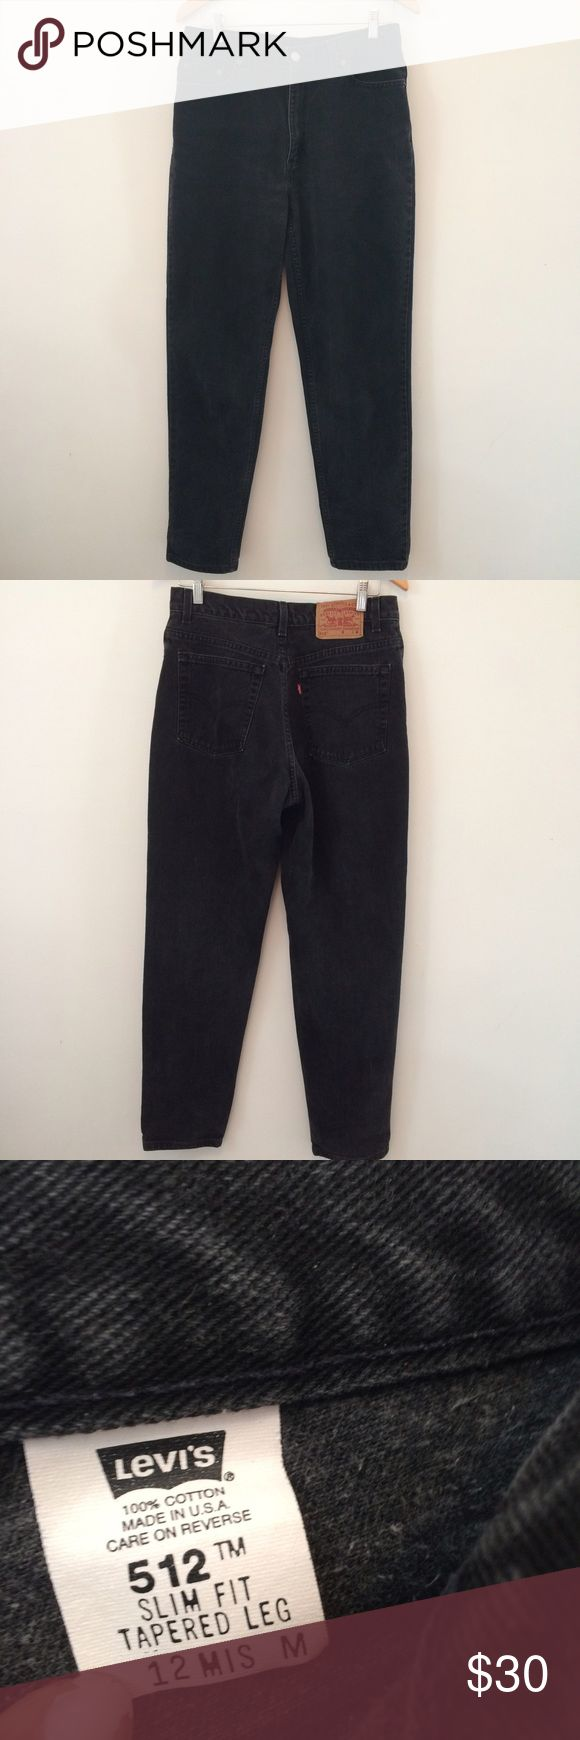 """Vintage Levi's 512 high waist mom jeans black Great condition. Faded black mom Jean. Tag says size 12 fit like a 10. Inseam 28"""" waist measures 15.5 Levi's Jeans Boyfriend"""